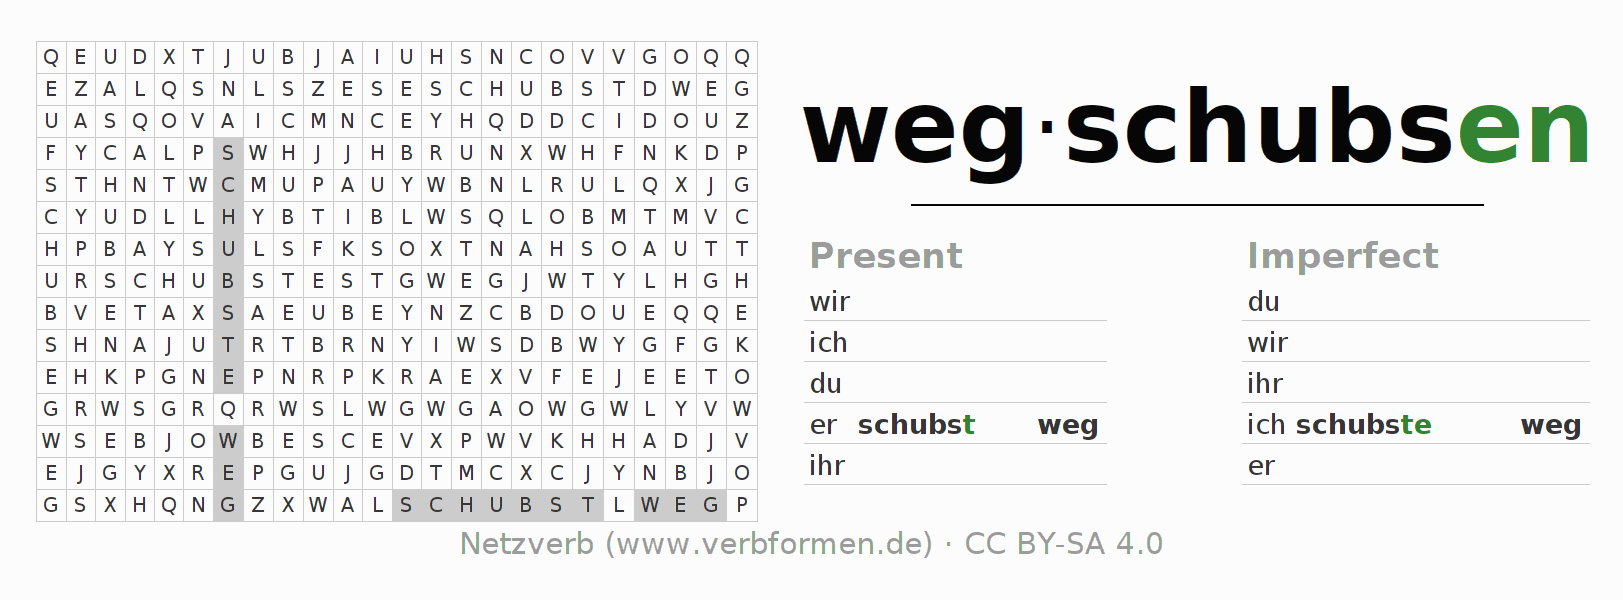 Word search puzzle for the conjugation of the verb wegschubsen